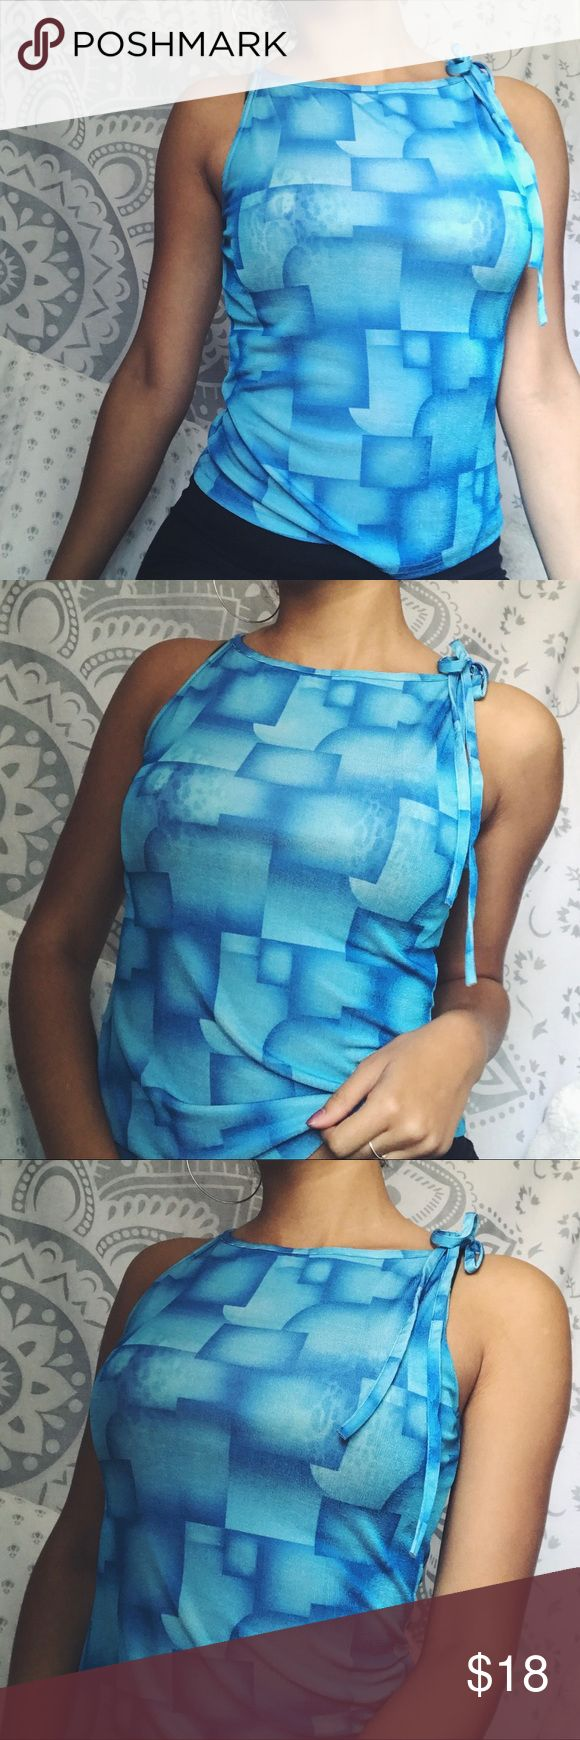 Vintage Blue Tank Top ❣️ VINTAGE BLUE TANK TOP ❣️  ••• various blues color block shirt. has a cute tie on one shoulder. great condition. perfect to pair with high waisted jeans! size small. made in usa. 90% polyester 10% spandex.   model is a small & 5'7 for ref.  •••  🌹 Bundle & Save! 🌹 No trades! 🌹 Check out my closet for more! Vintage Tops Tank Tops